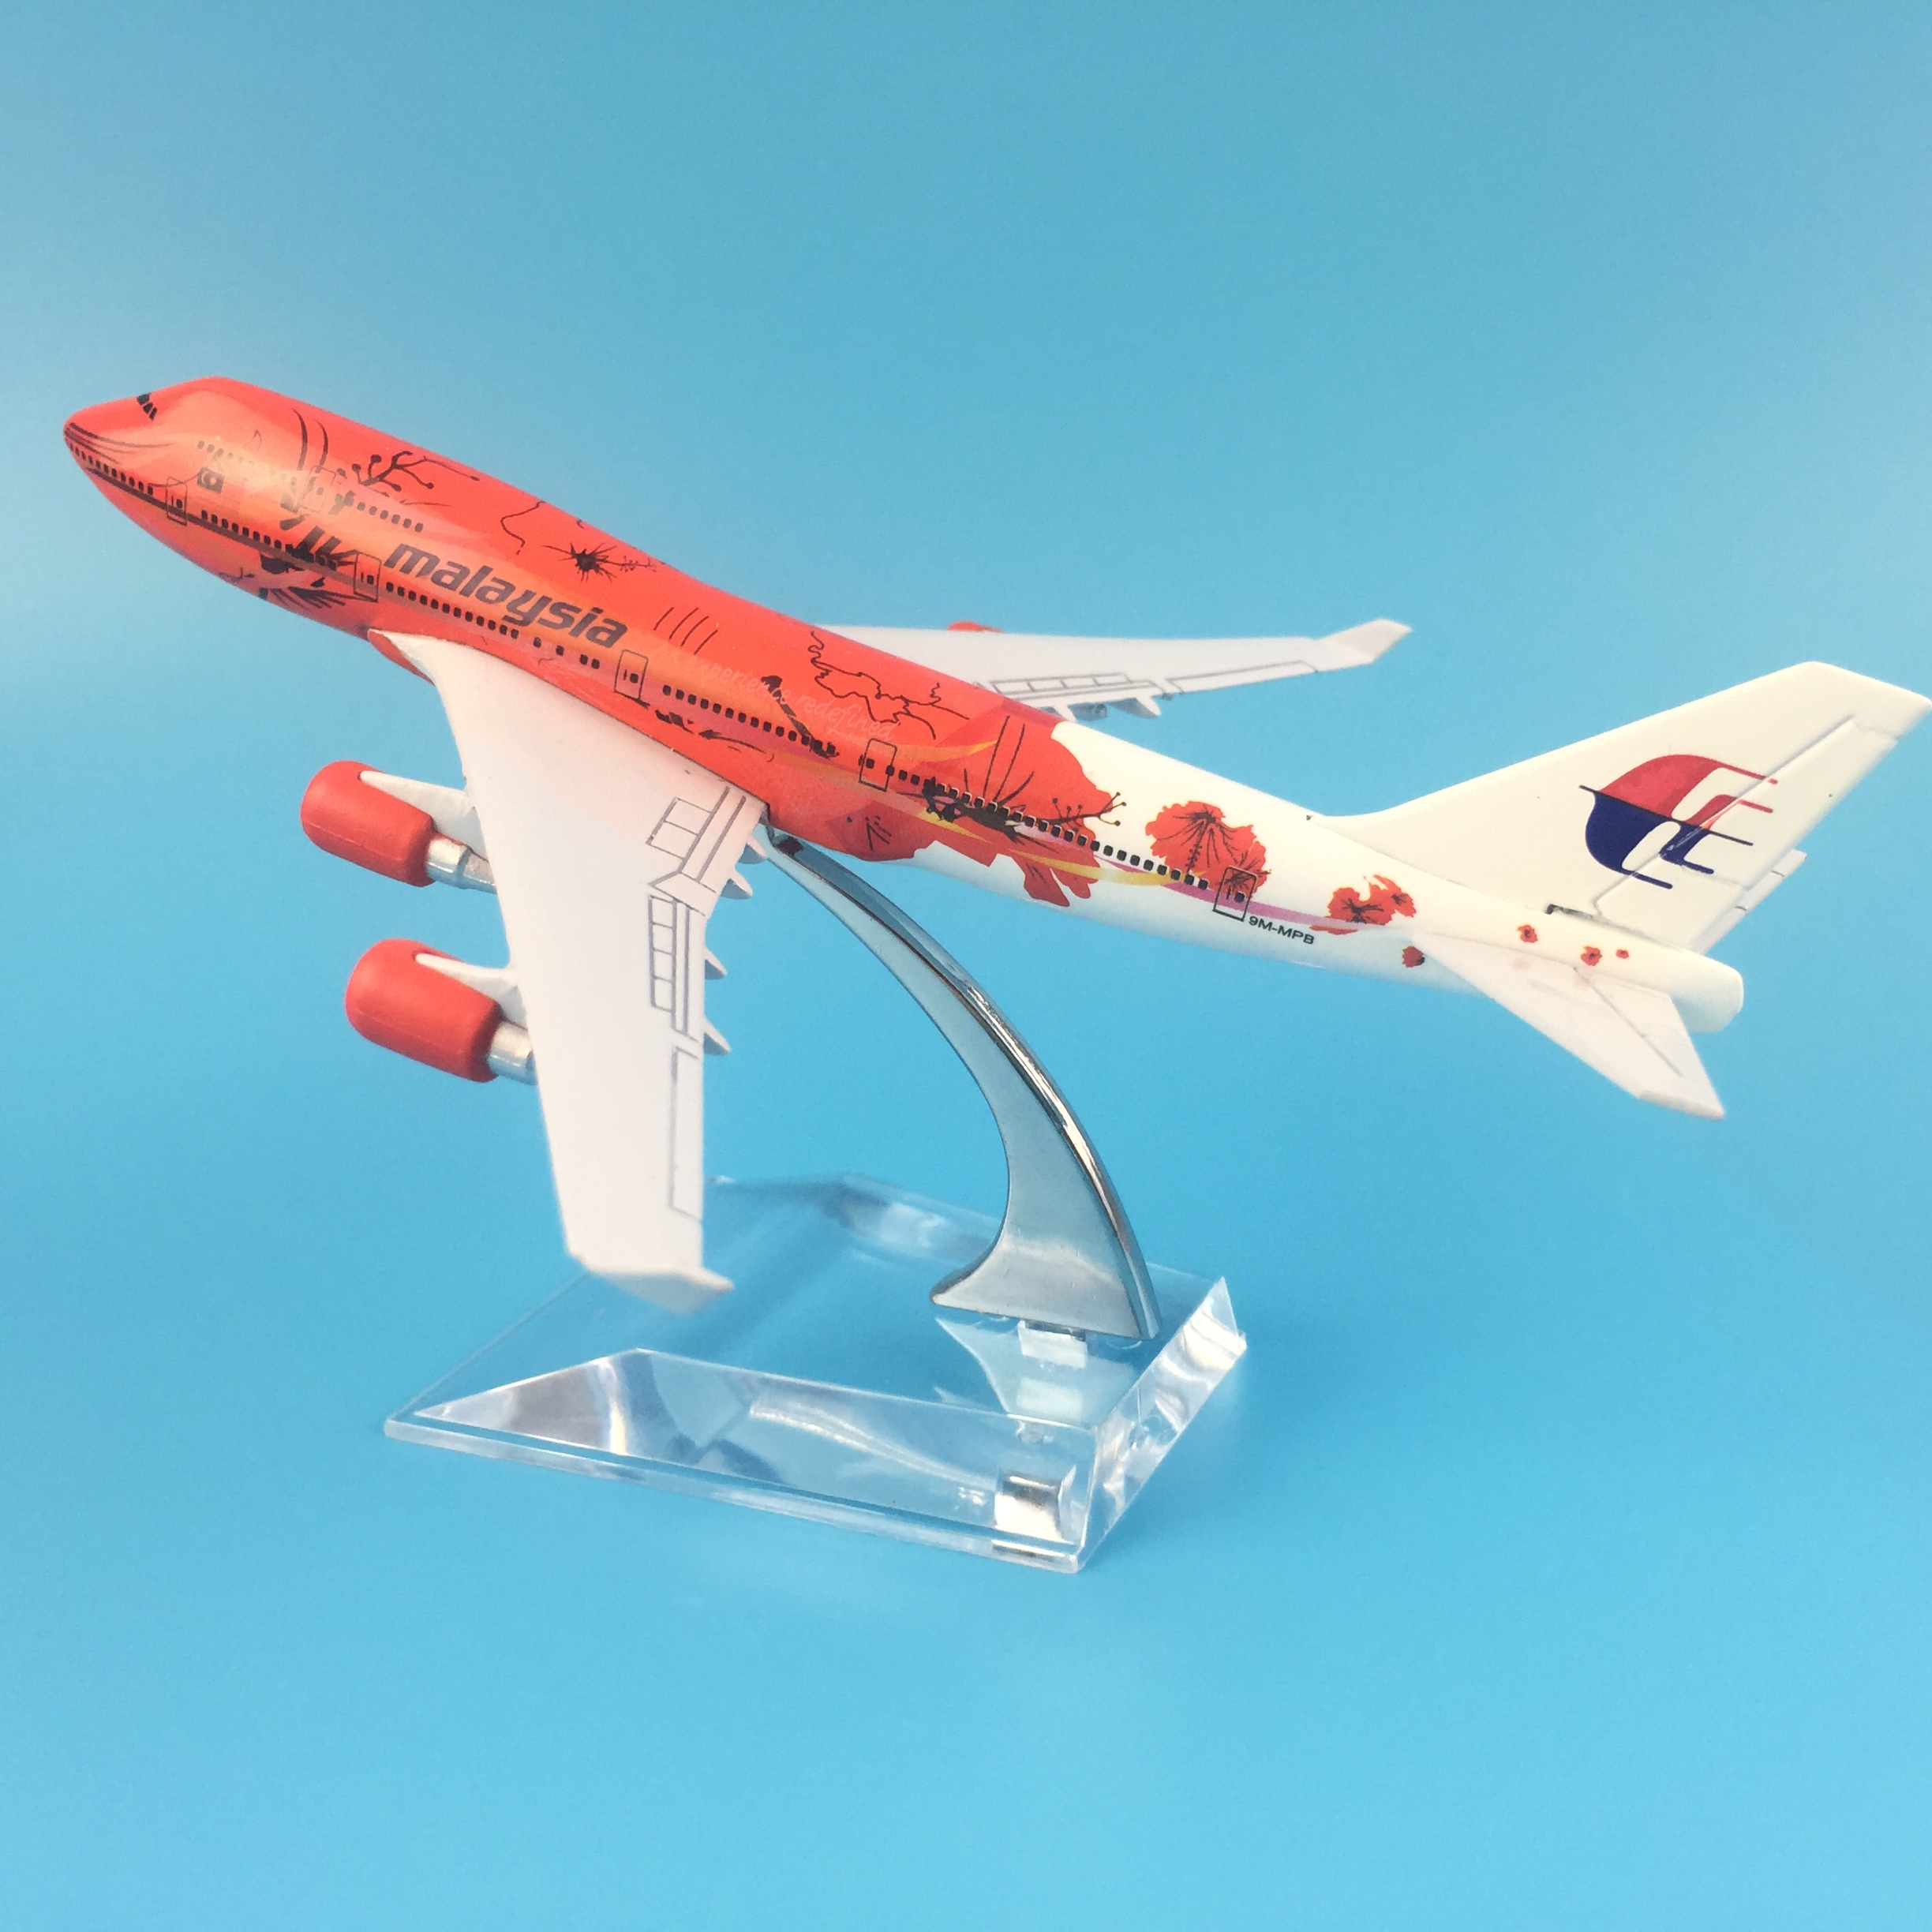 16CM AIRASIA 747 RED MALAYSIA METAL ALLOY MODEL PLANE AIRCRAFT MODEL TOY AIRPLANE BIRTHDAY GIFT image